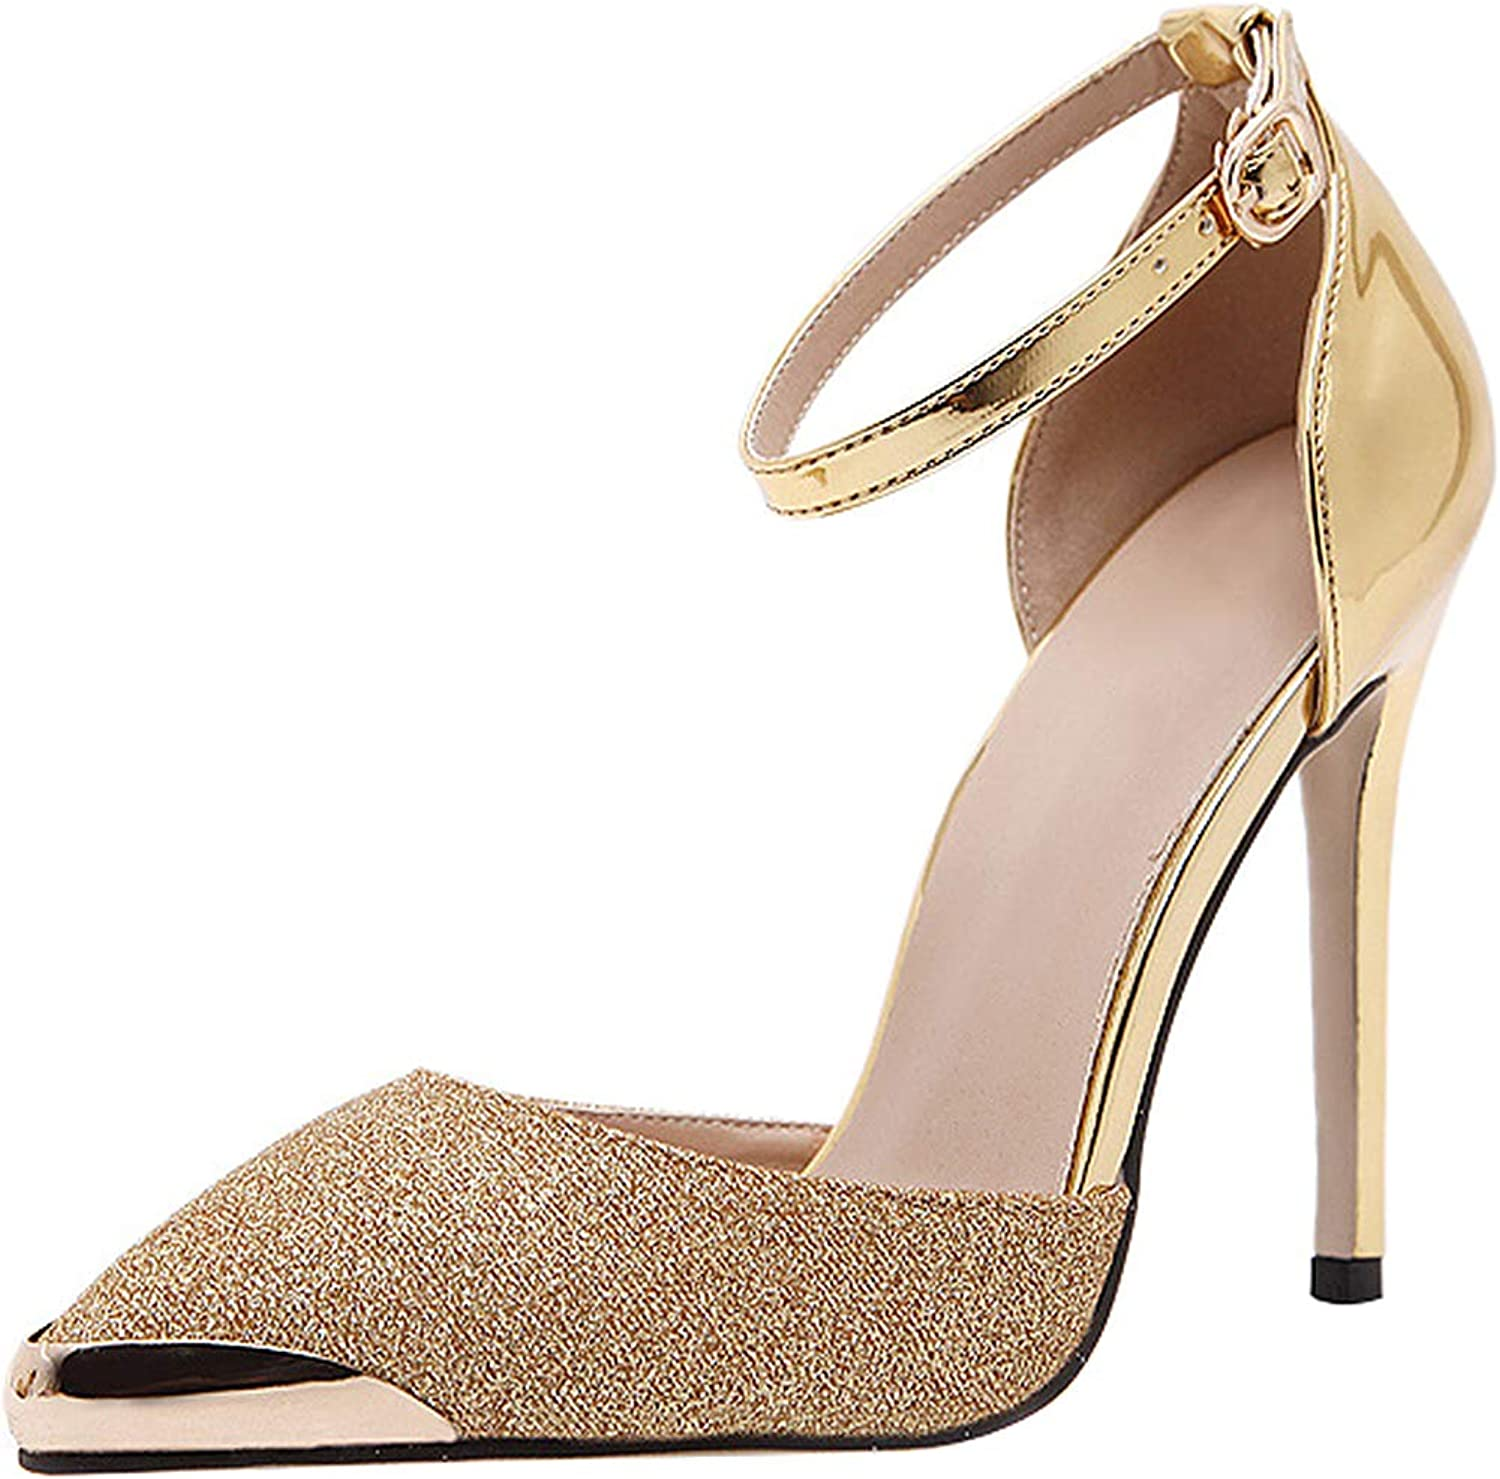 Sekesin Women's Pointed Toe Strappy High Heel Pumps D'Orsay Evening Party Dress Casual Sandal shoes